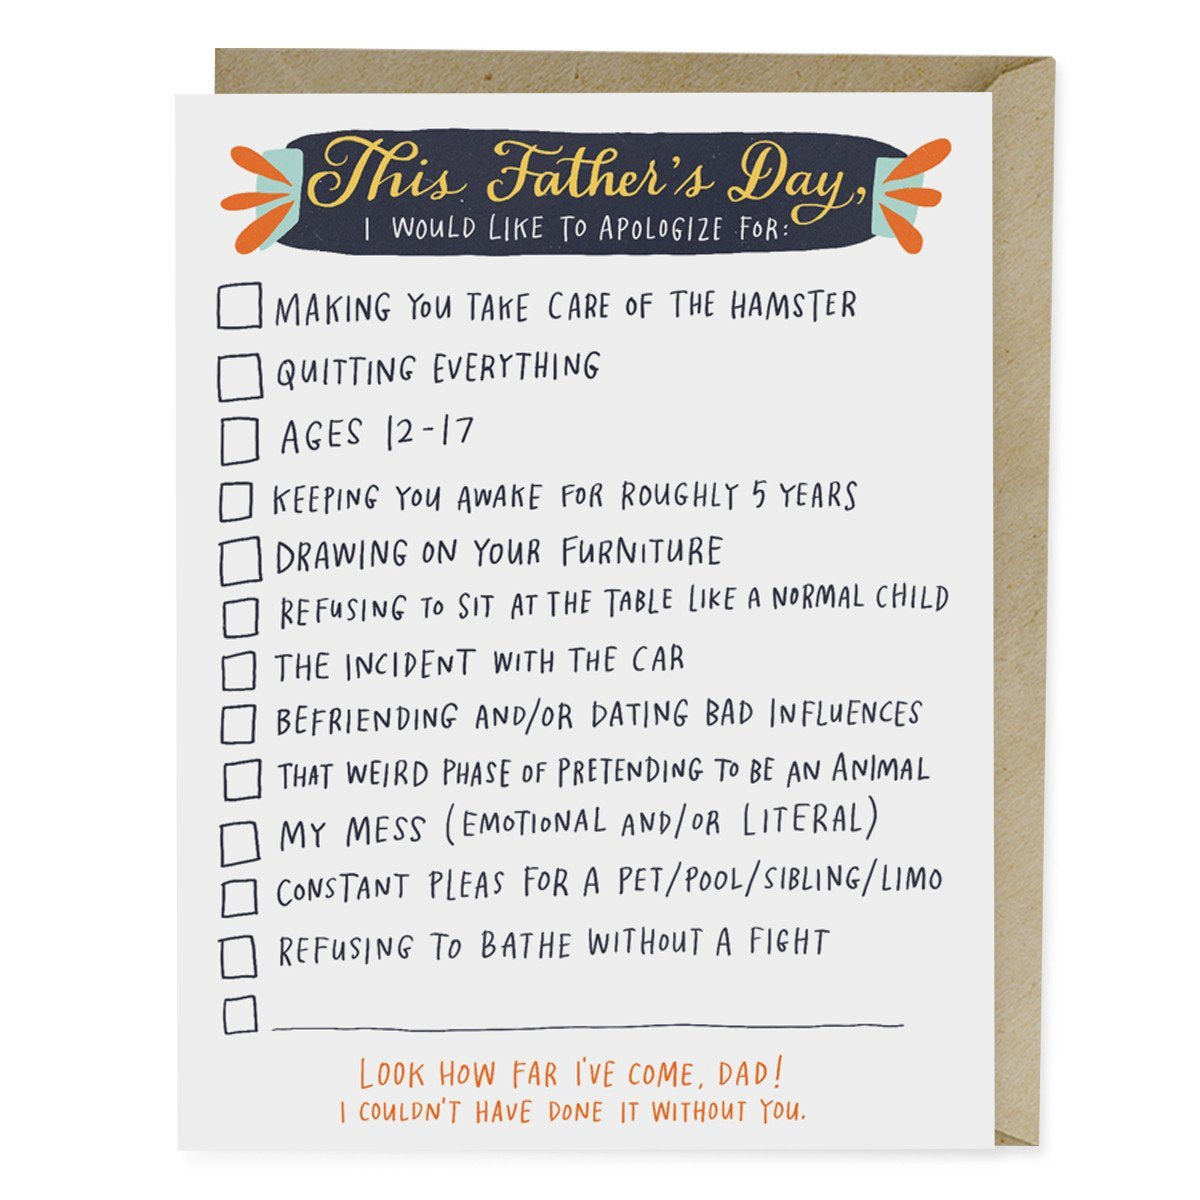 JUST LIKE A DAD TO ME Fd4 Father's Day Card